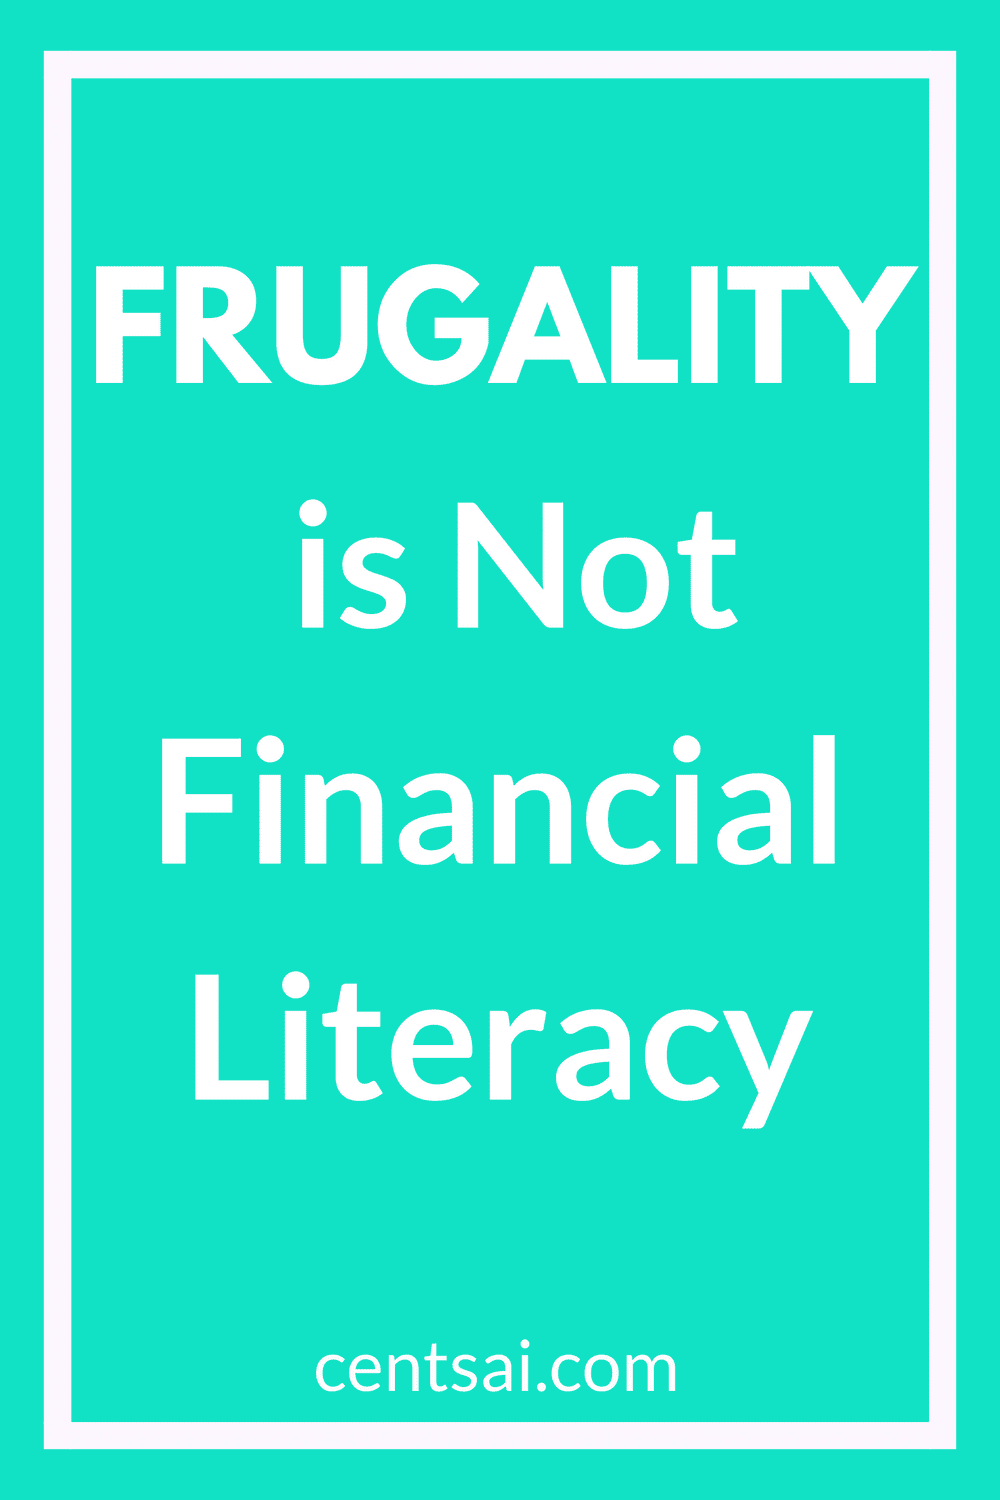 Frugality is Not Financial Literacy. Yes, it's right! Many people seem to think that financial literacy means learning to lead a frugal lifestyle. But this is far from the truth. #frugality #frugal #financialliteracy